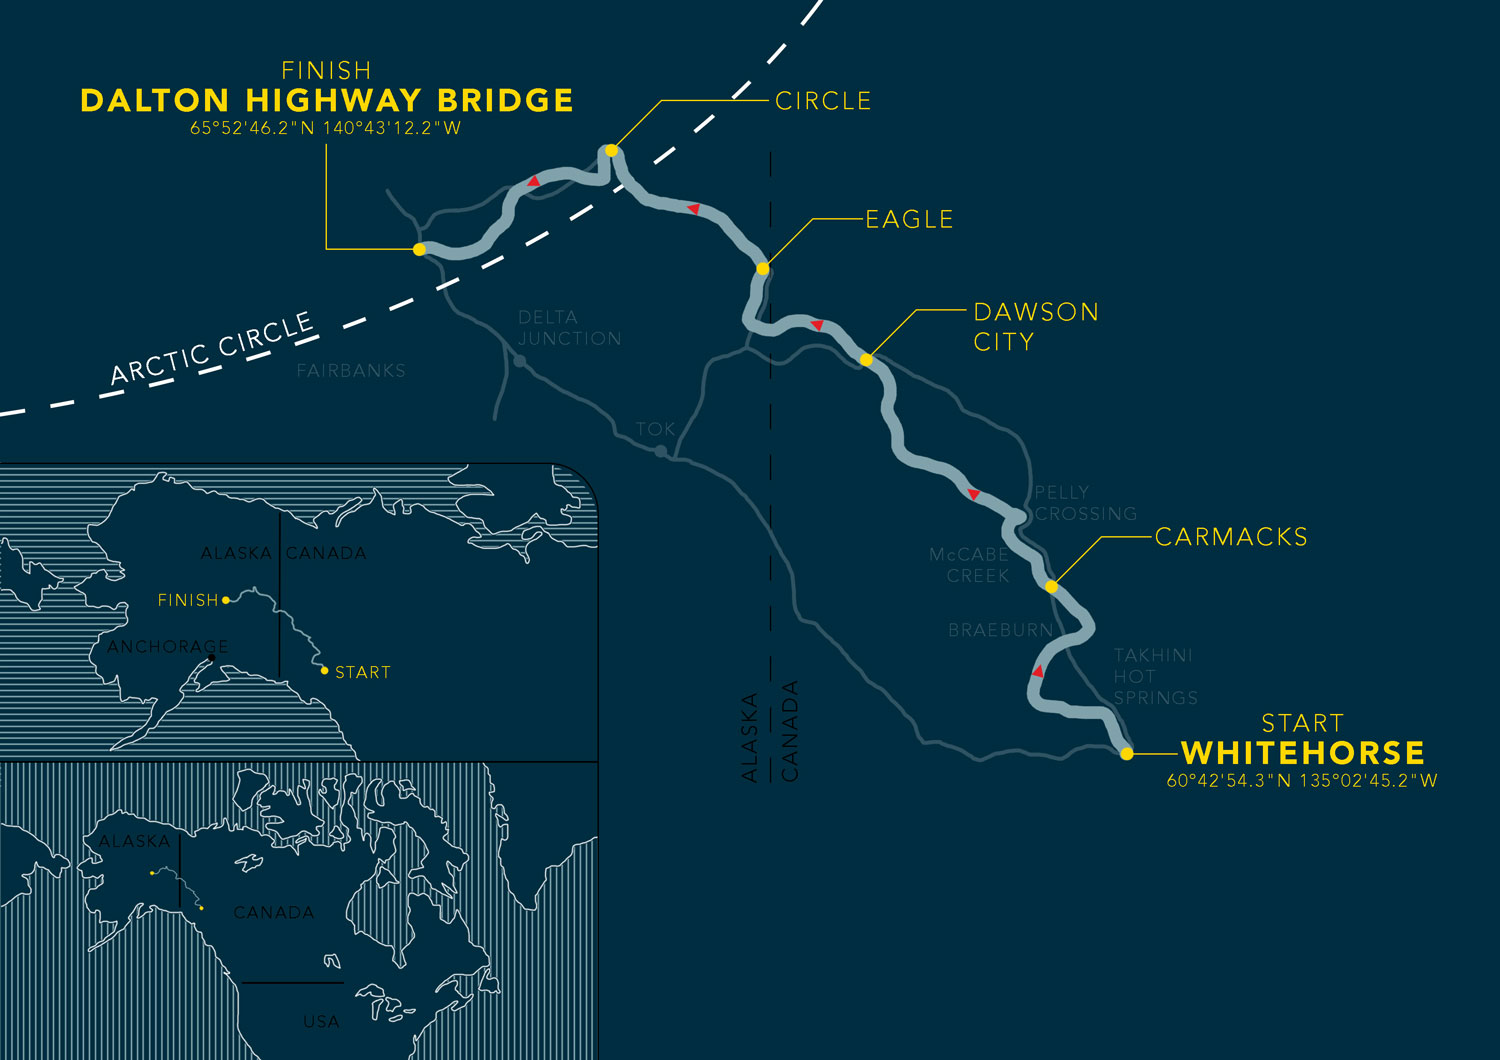 - Start - Whitehorse60°42'54.3″N 135°02'45.2″WFinish - Dalton Highway Bridge65°52'46.2″N 149°43'12.2″W